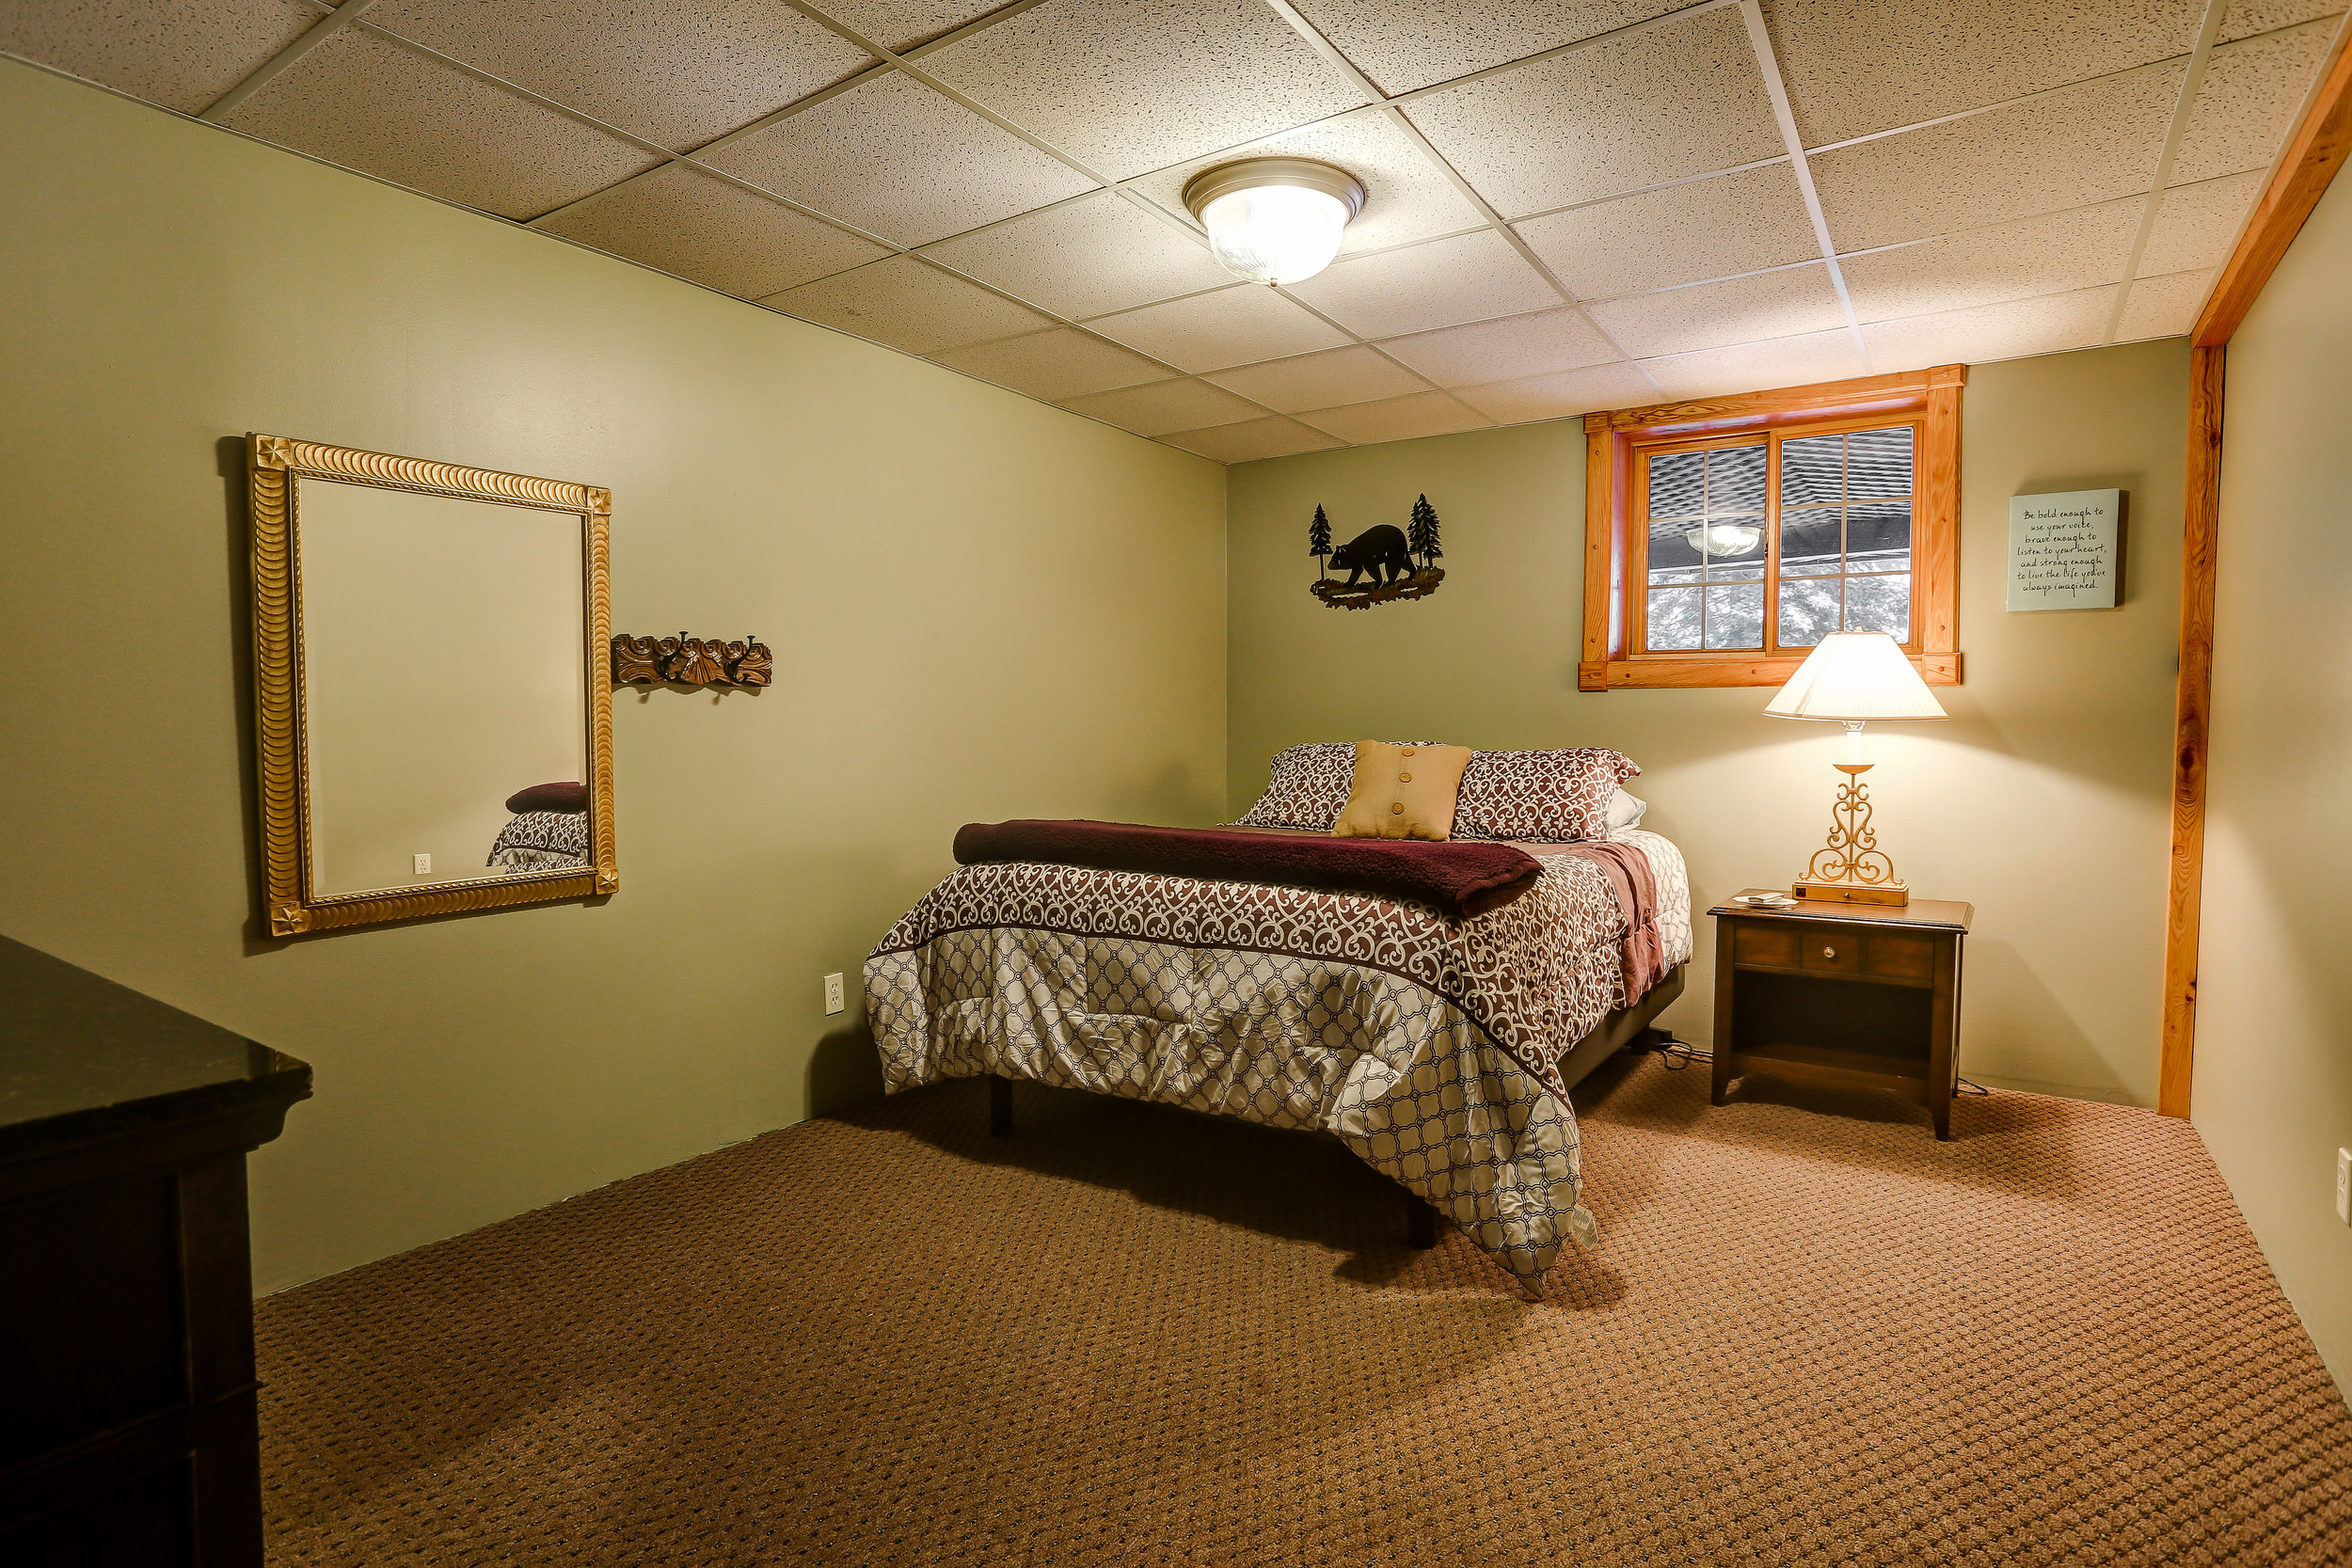 Bear's Den Room - Downstairs | Queen bed and shared bathroom in hallway